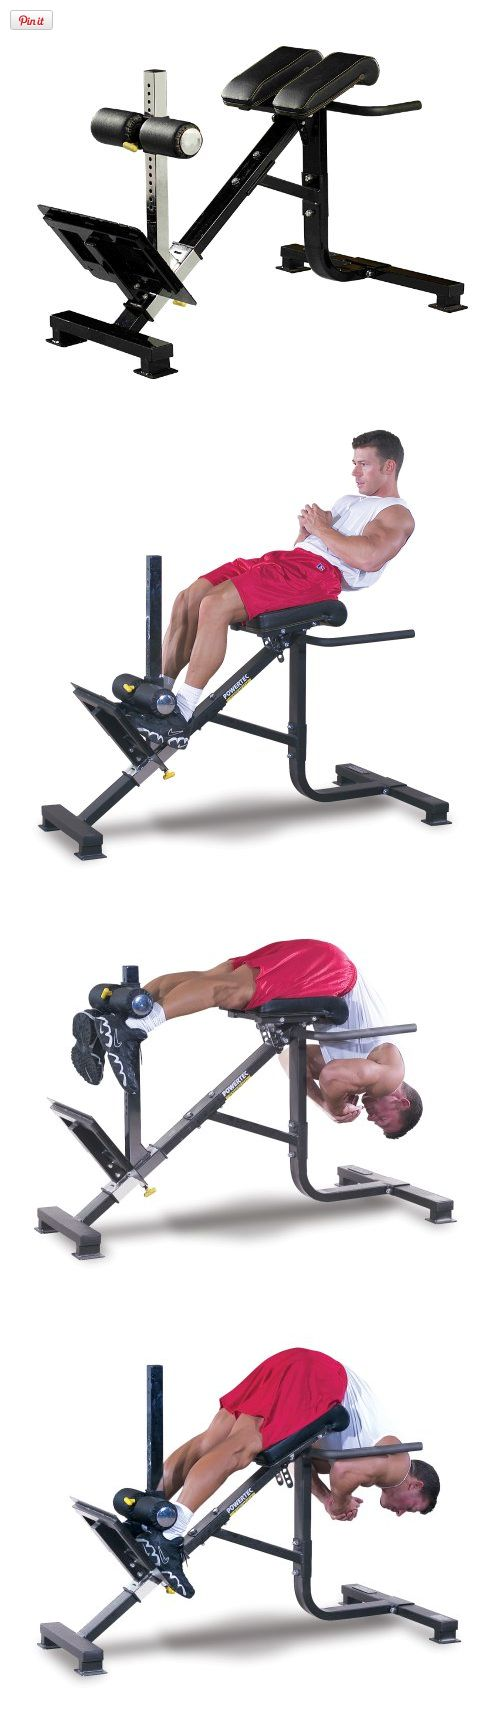 Powertec Fitness P-HC10 45-Degree Dual Hyperextension / Roman Chair, The Powertec 45 Dual Hyperextension / Roman Chair allows you to strengthen your lower back, glutes and abs in a comfortable and precise position., #Sporting Goods, #Core & Abdominal Trainers